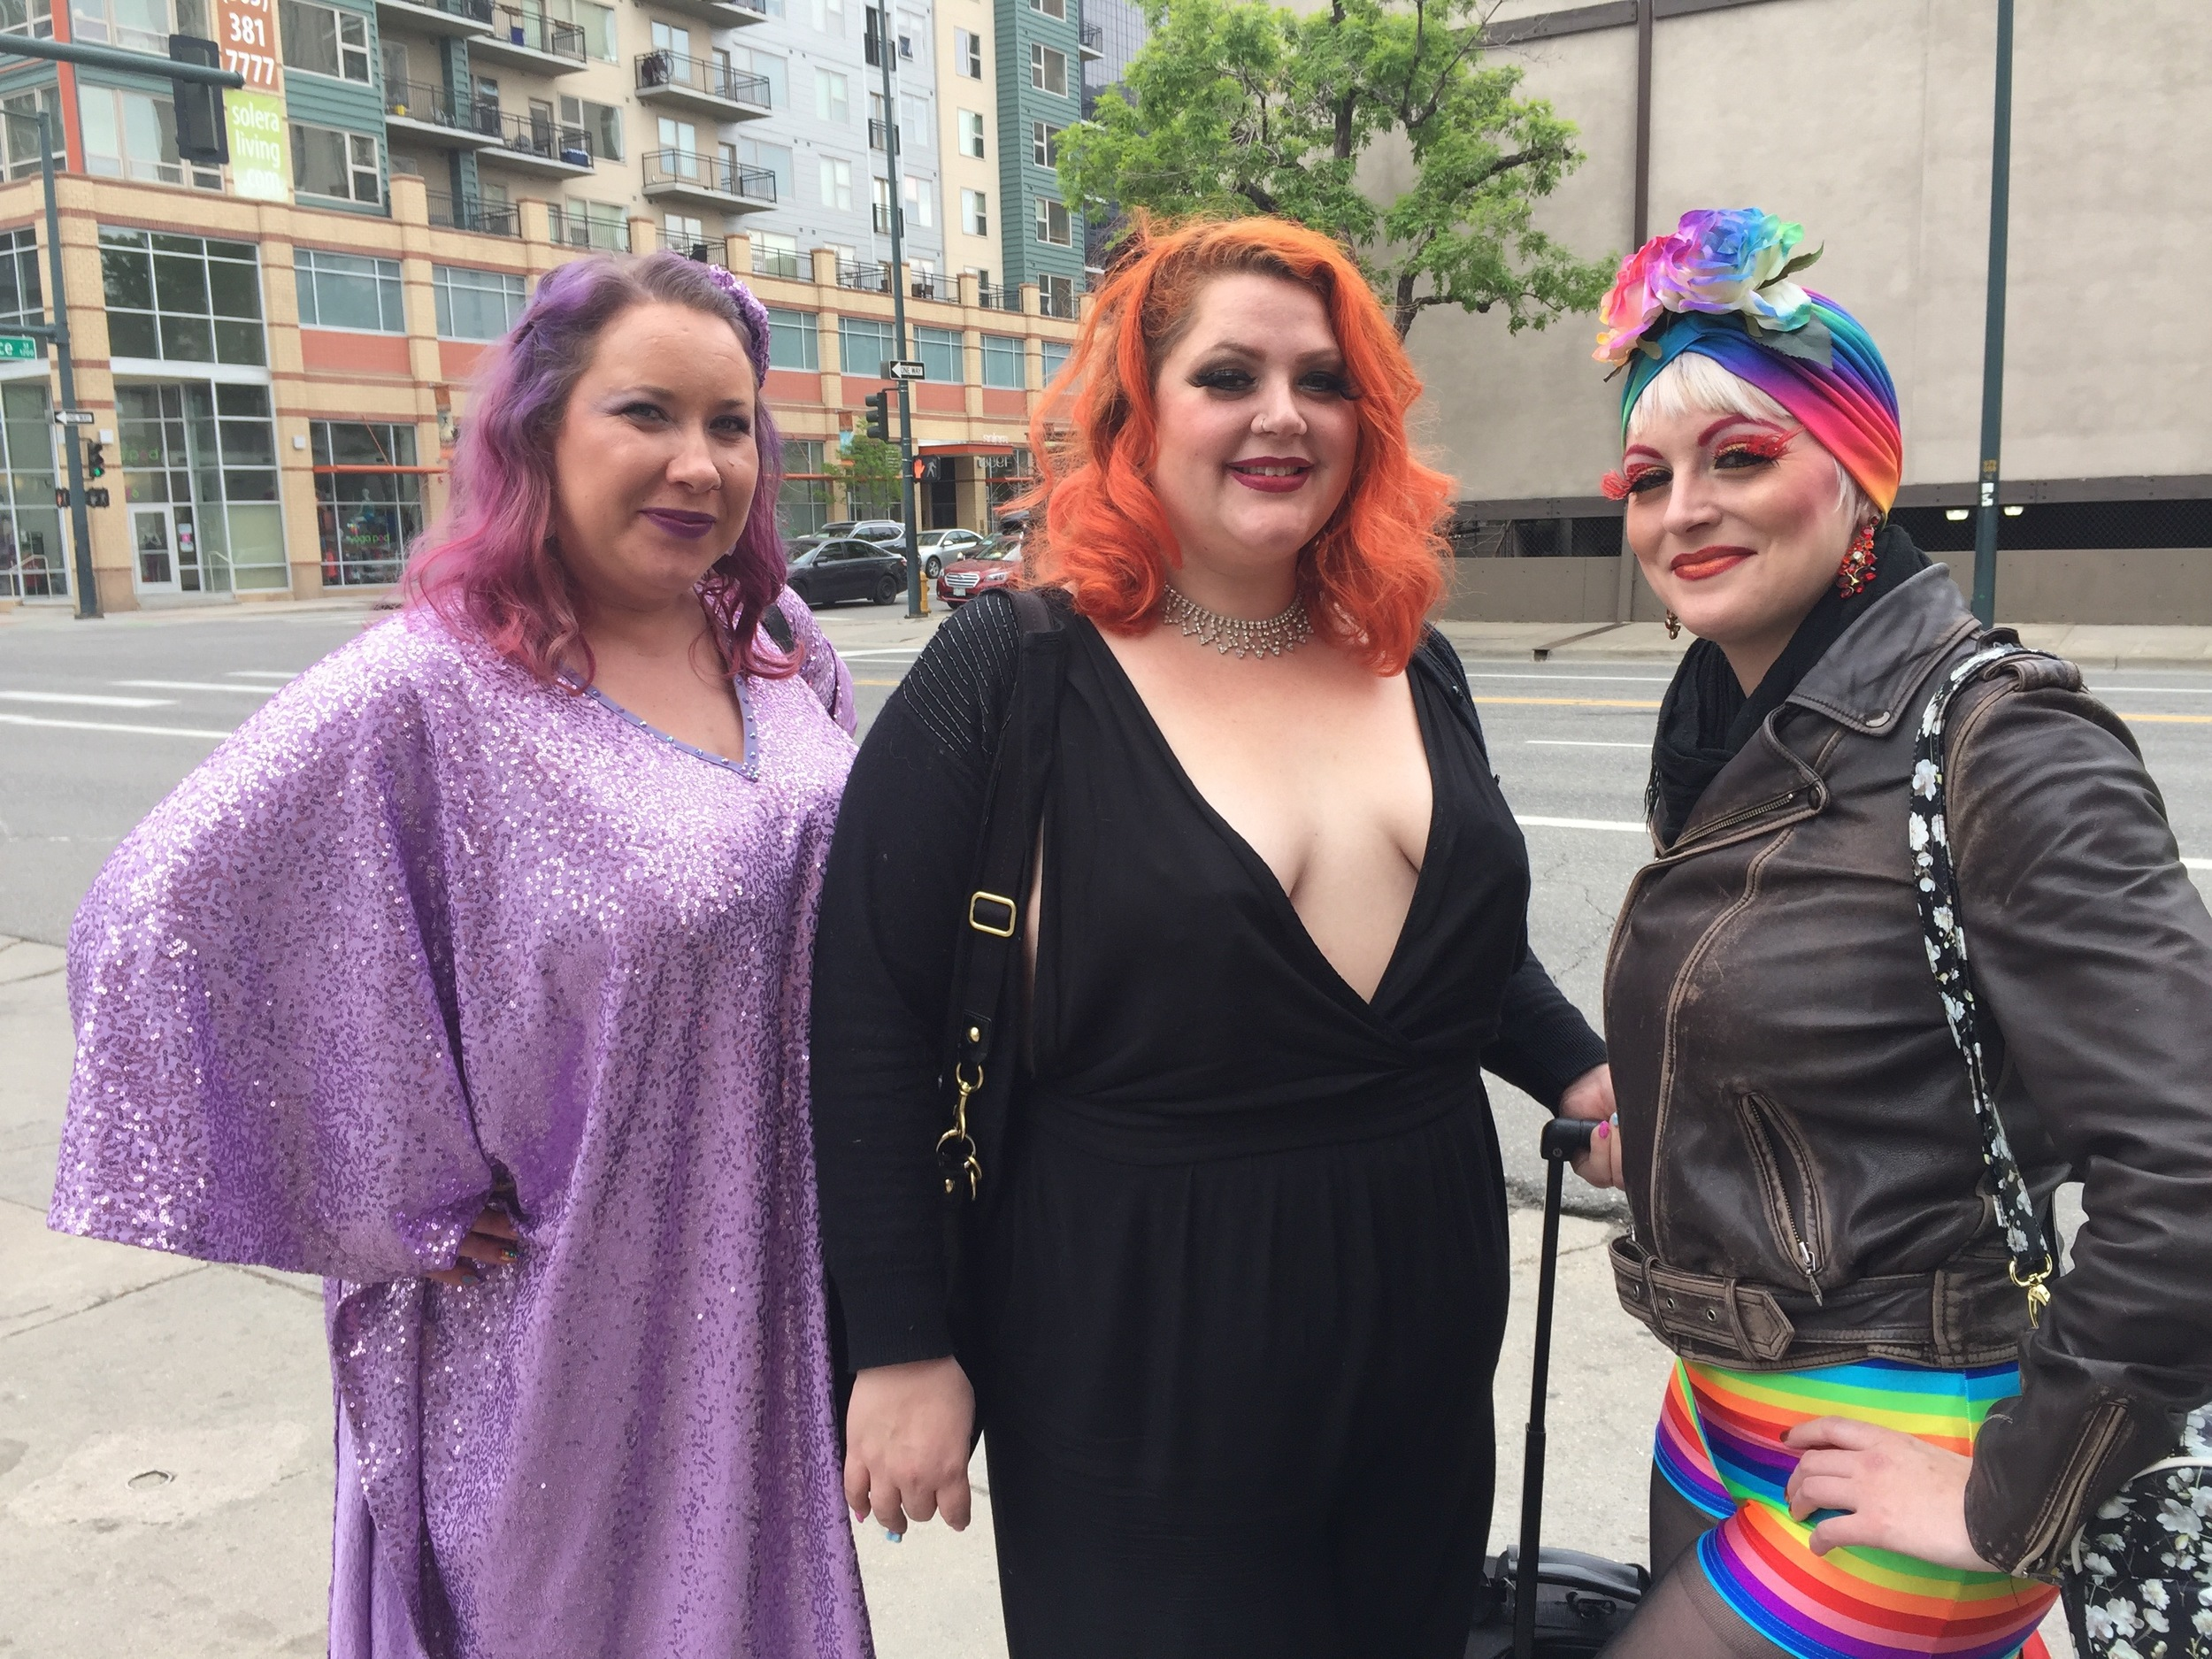 A group of ladies outside of Ophelia's Electric Soapbox in town for Fierce! Queer Burlesque Festival.